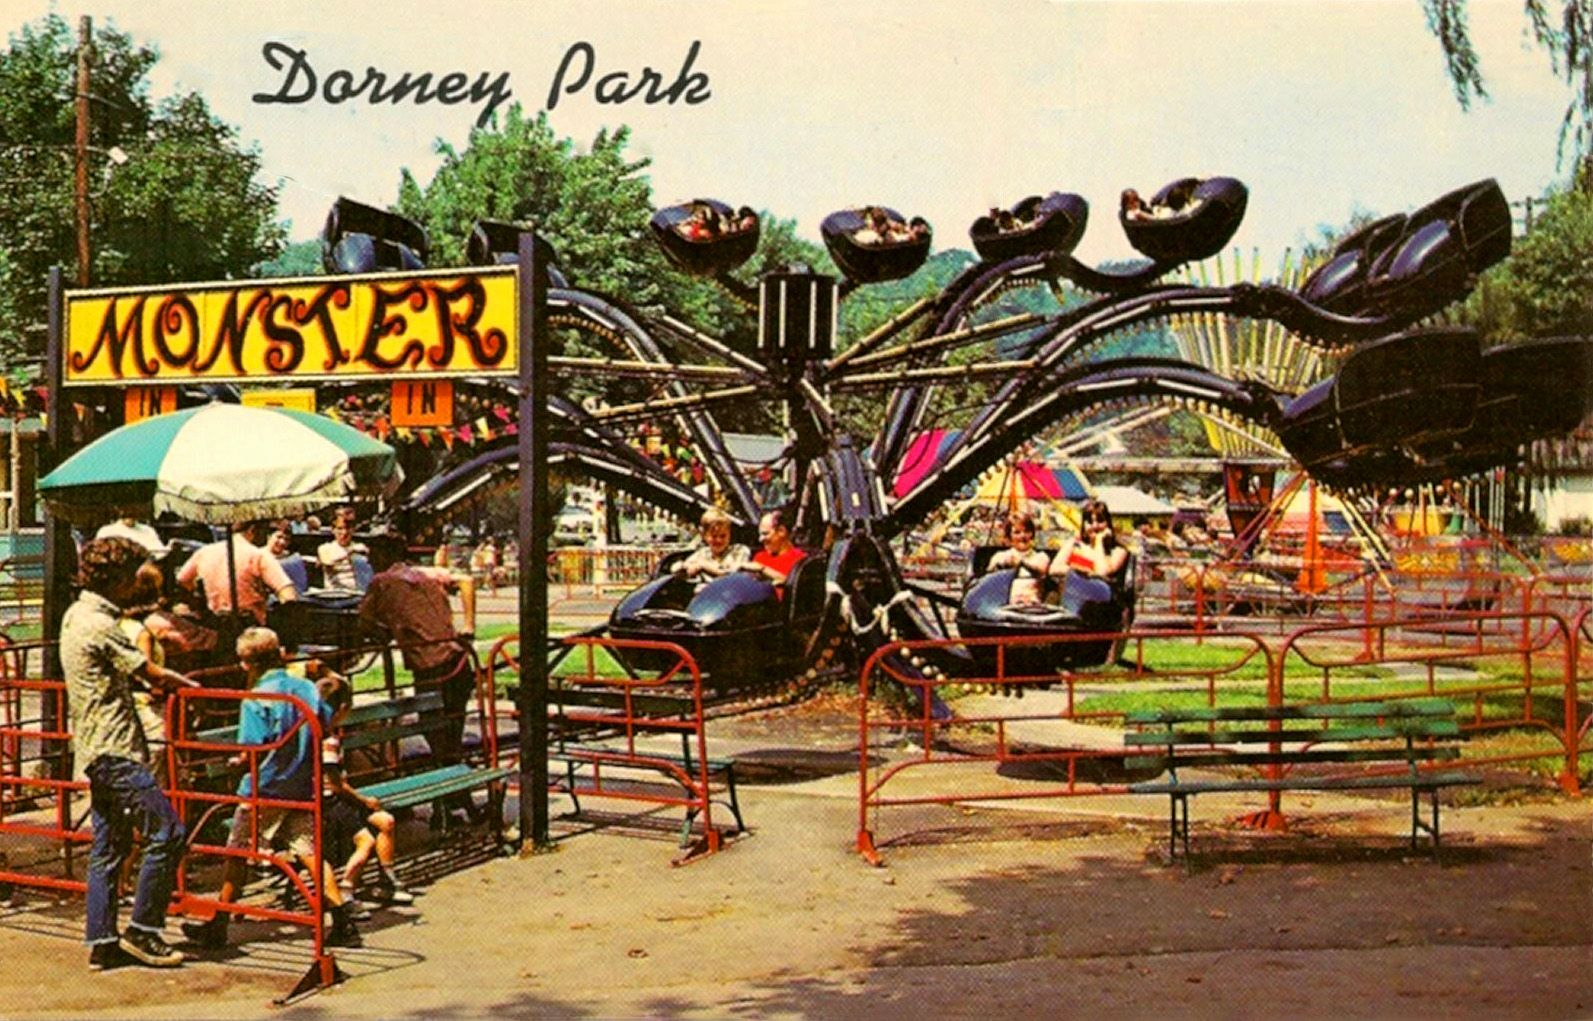 A 1960s postcard showing the Monster ride at Dorney Park in ...